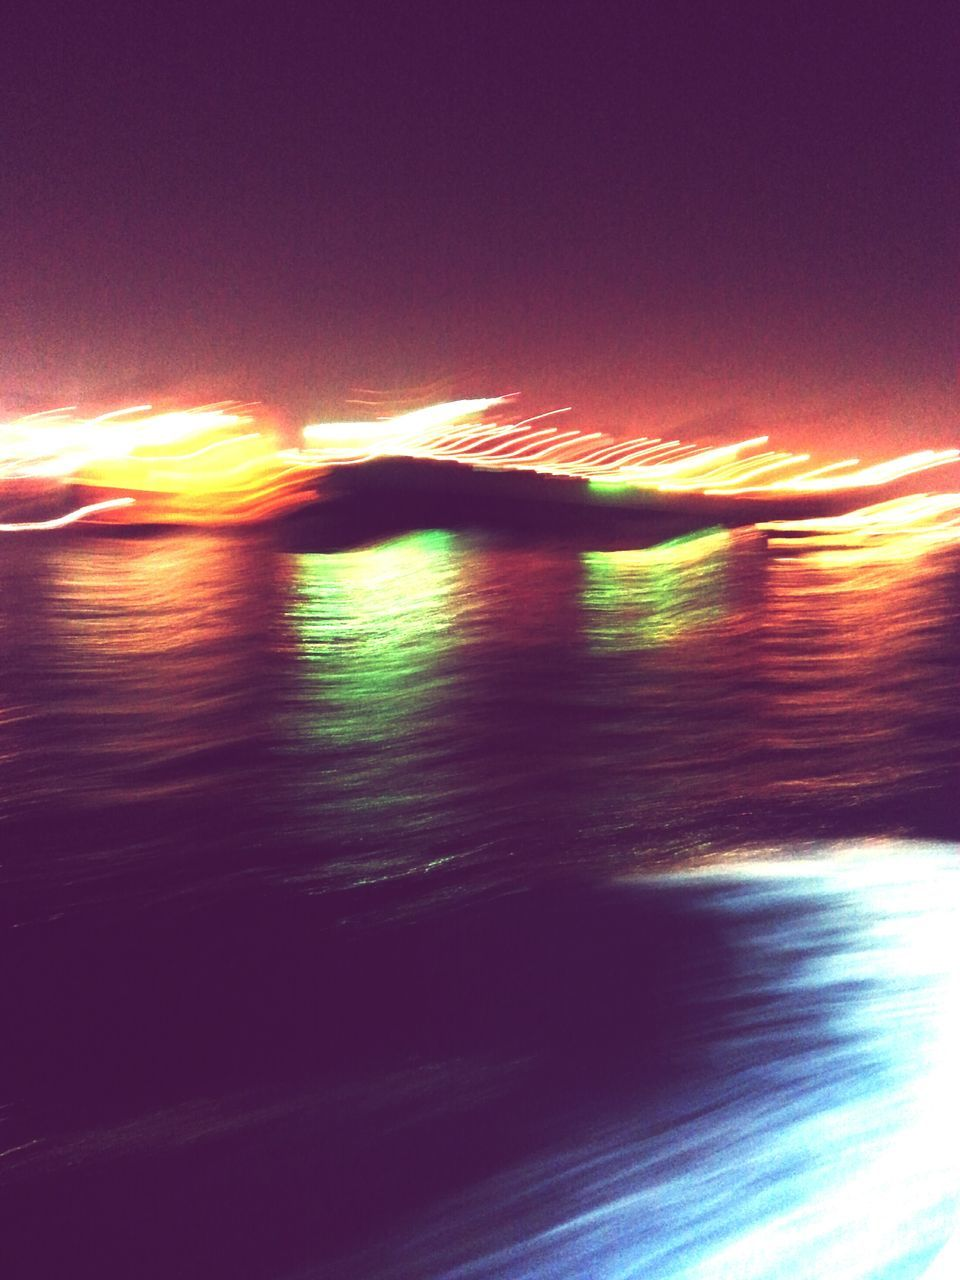 sea, nature, no people, beauty in nature, speed, sunset, outdoors, scenics, motion, sky, sunlight, tranquility, horizon over water, wave, water, day